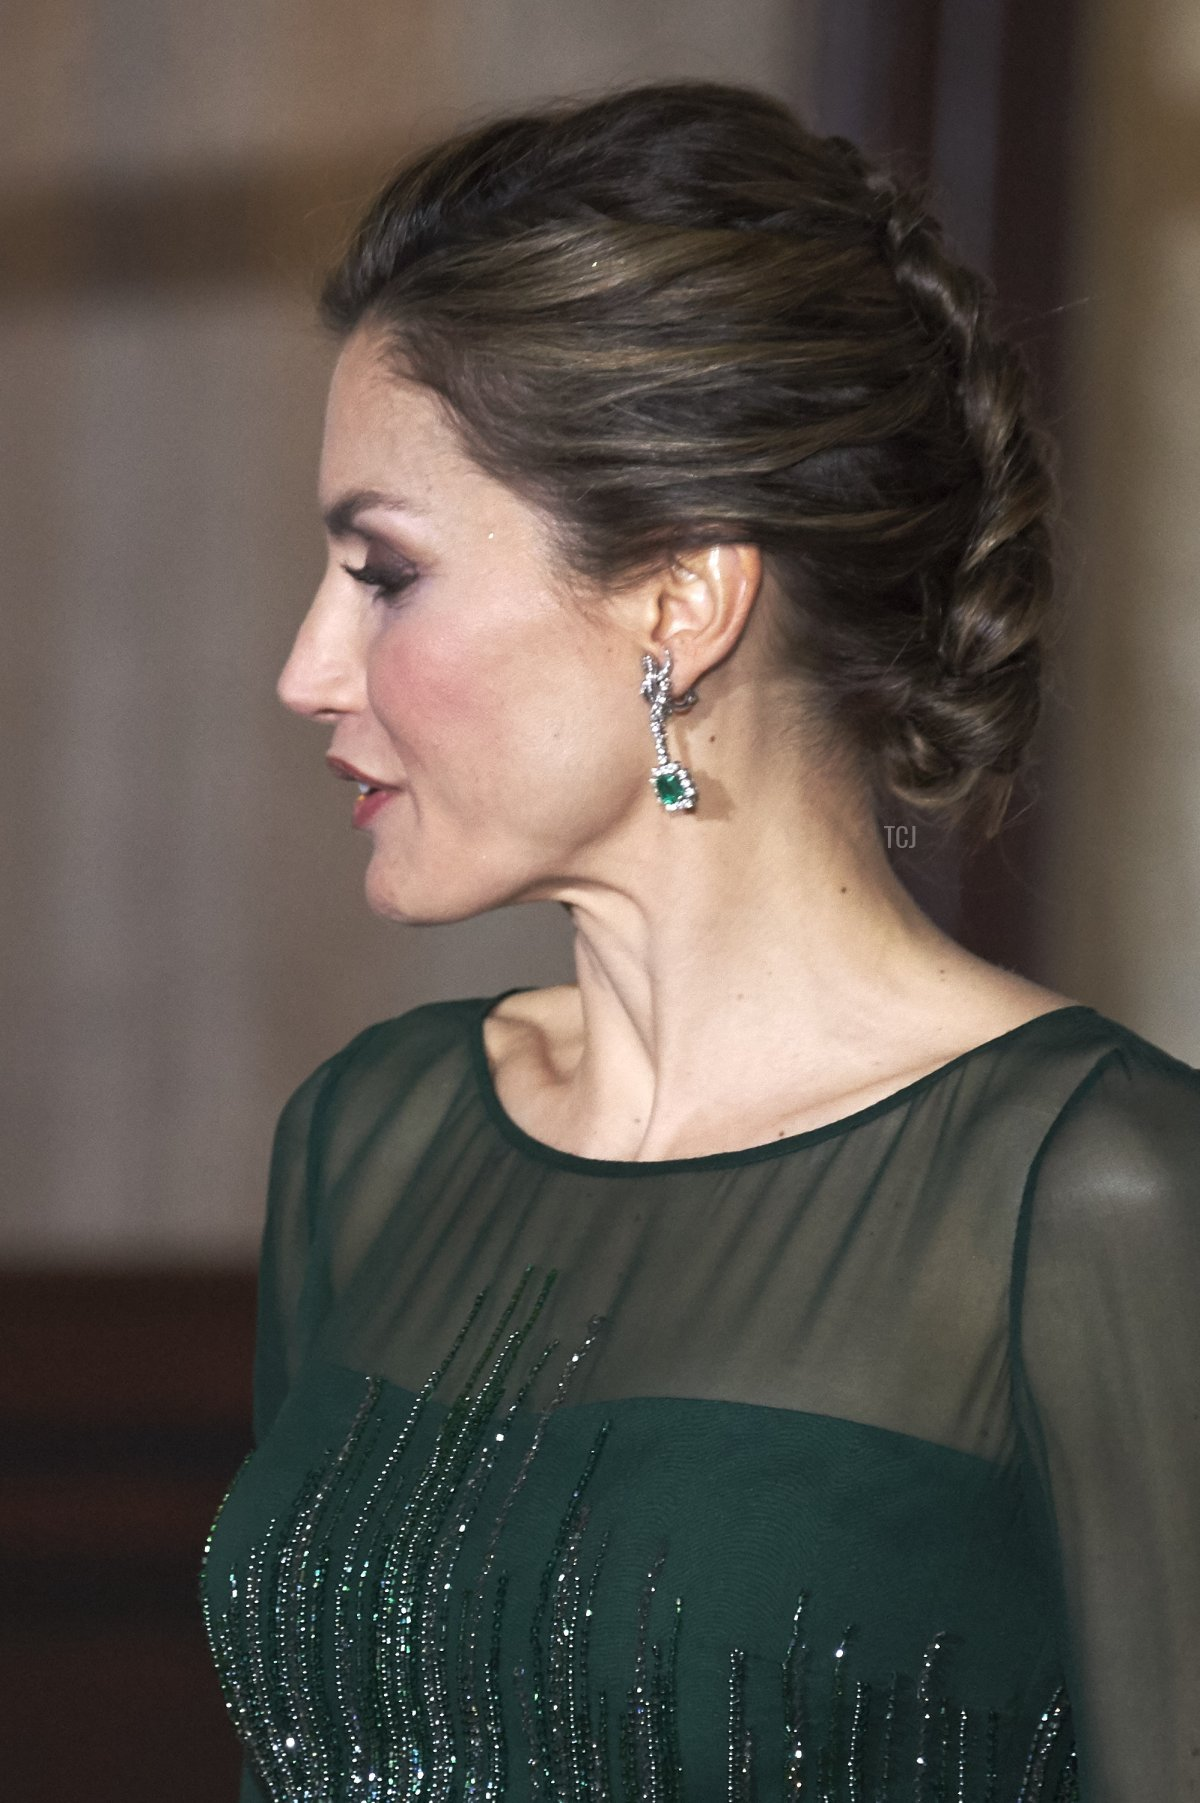 Queen Letizia of Spain attends a Gala dinner at Palacio de las Necesidades during her official visit to Portugal on November 29, 2016, in Lisbon, Portugal